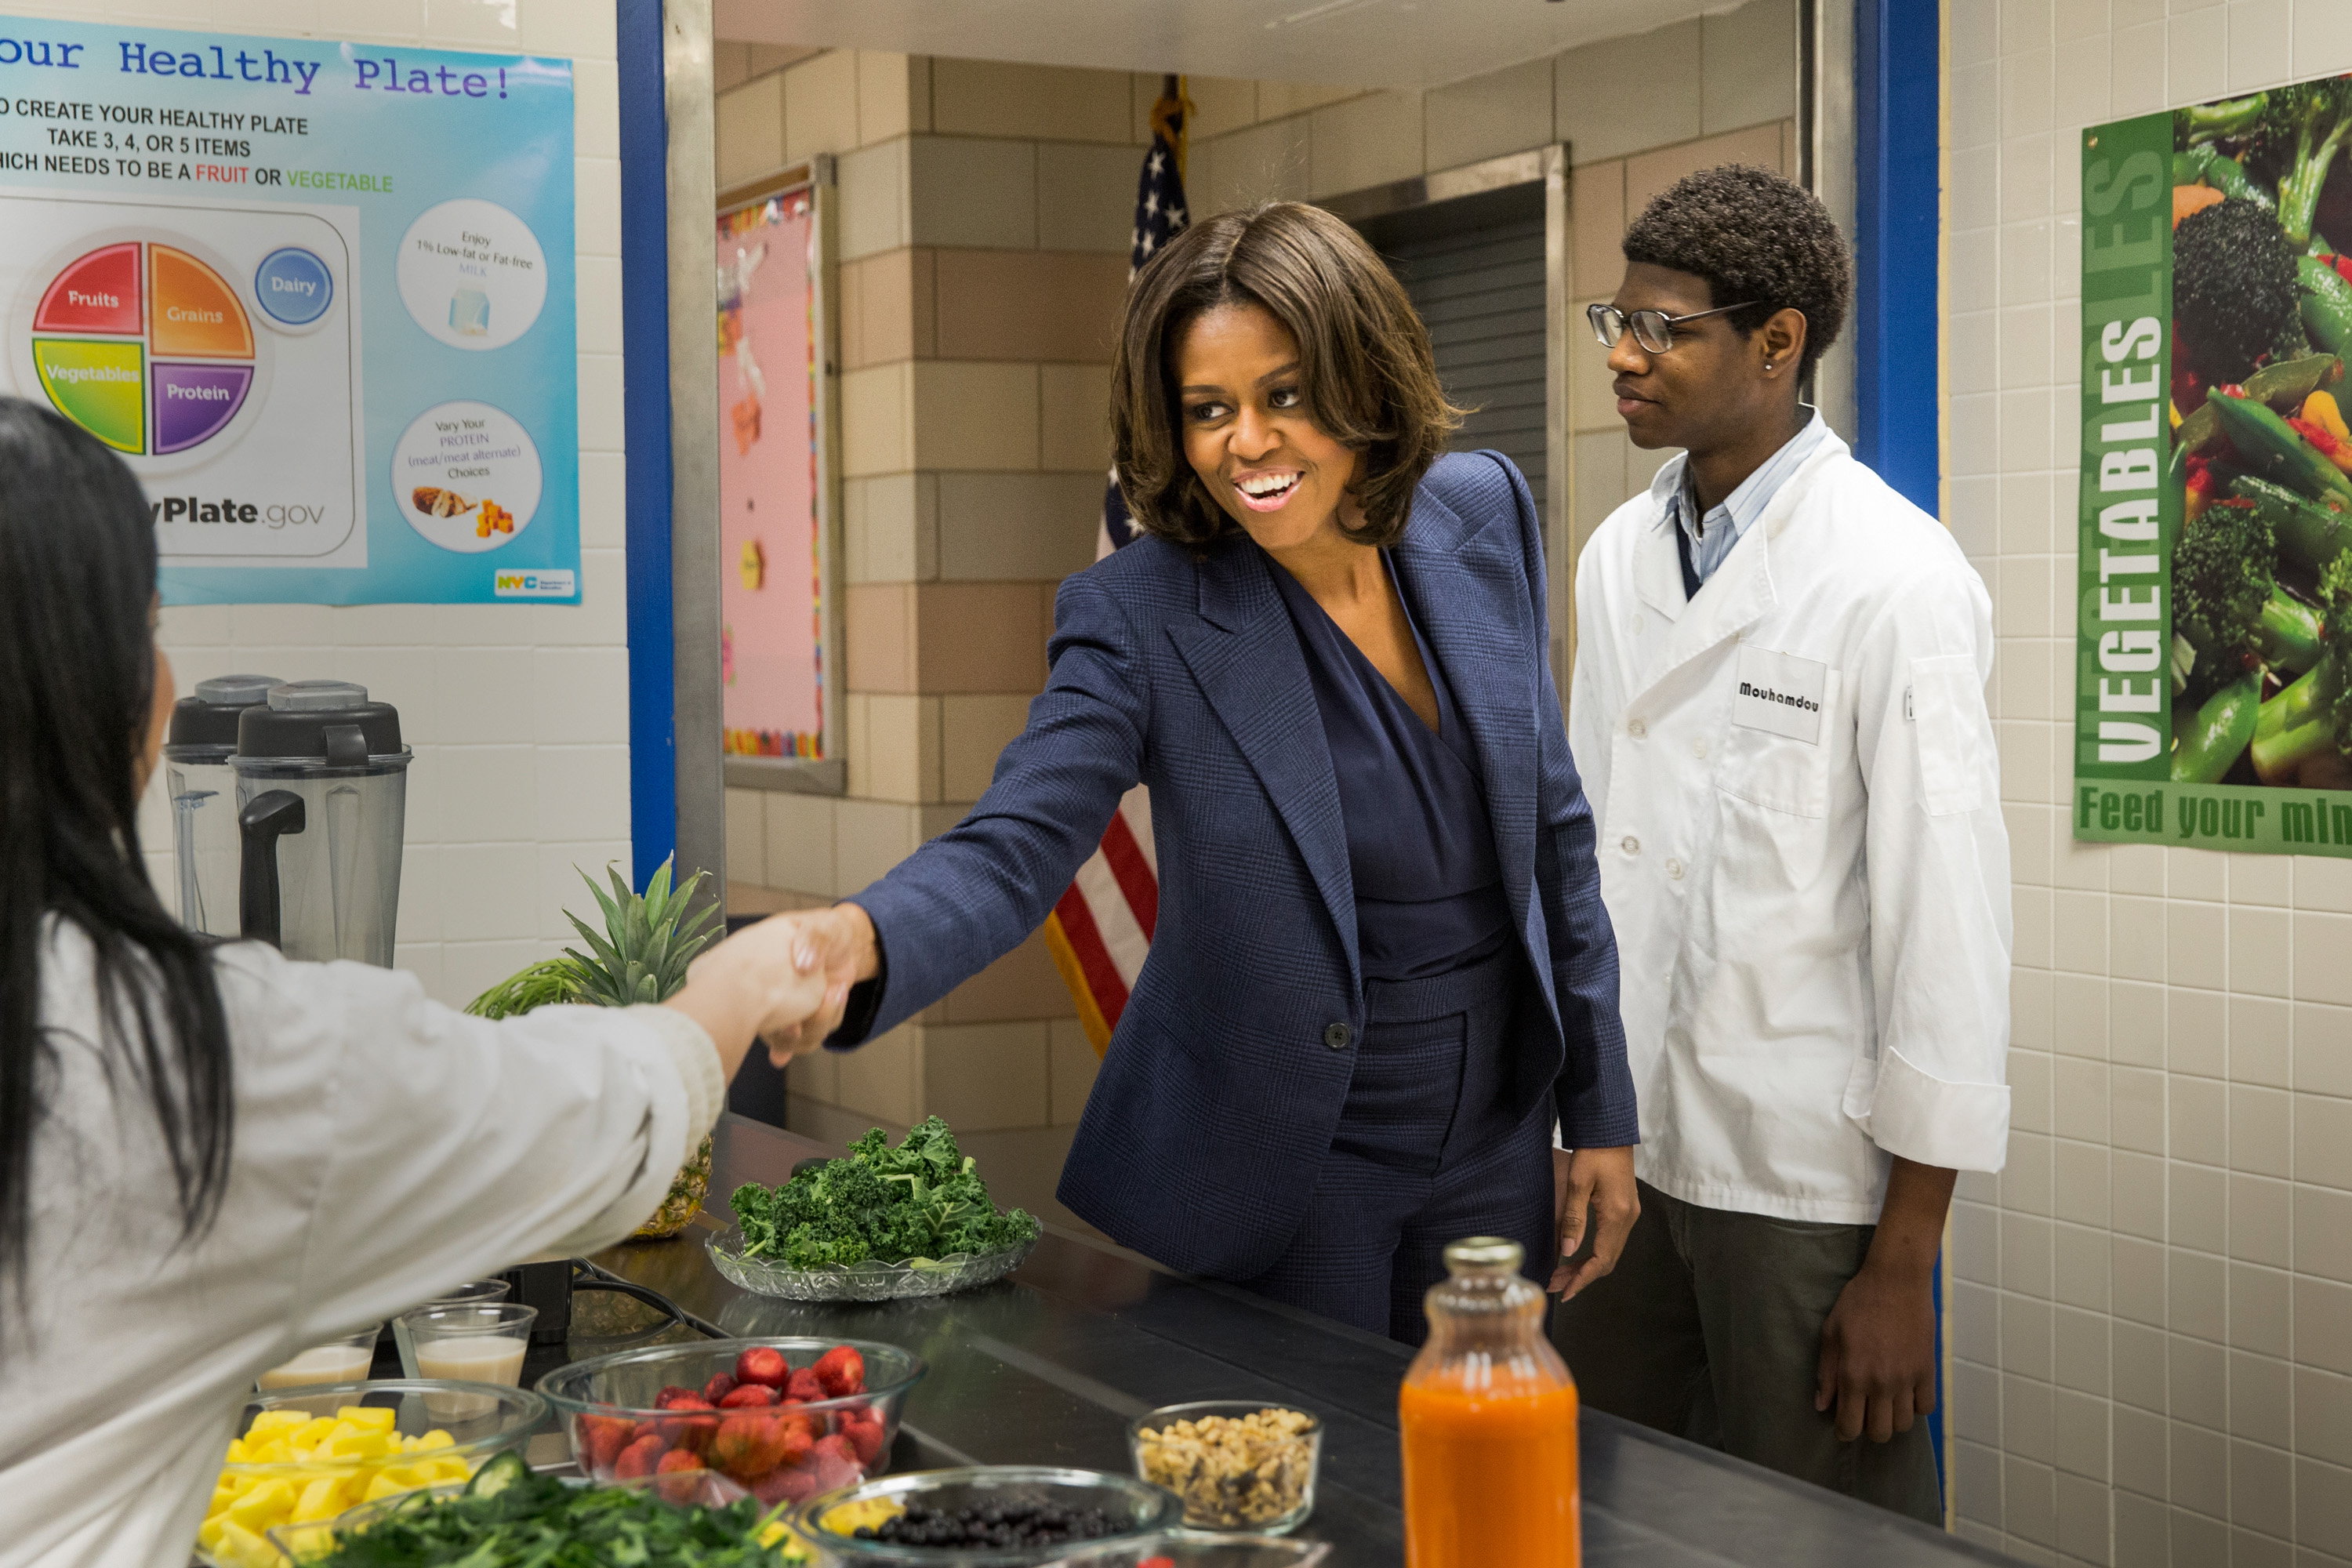 Michelle Obama Takes Credit for America's Healthier Food Culture